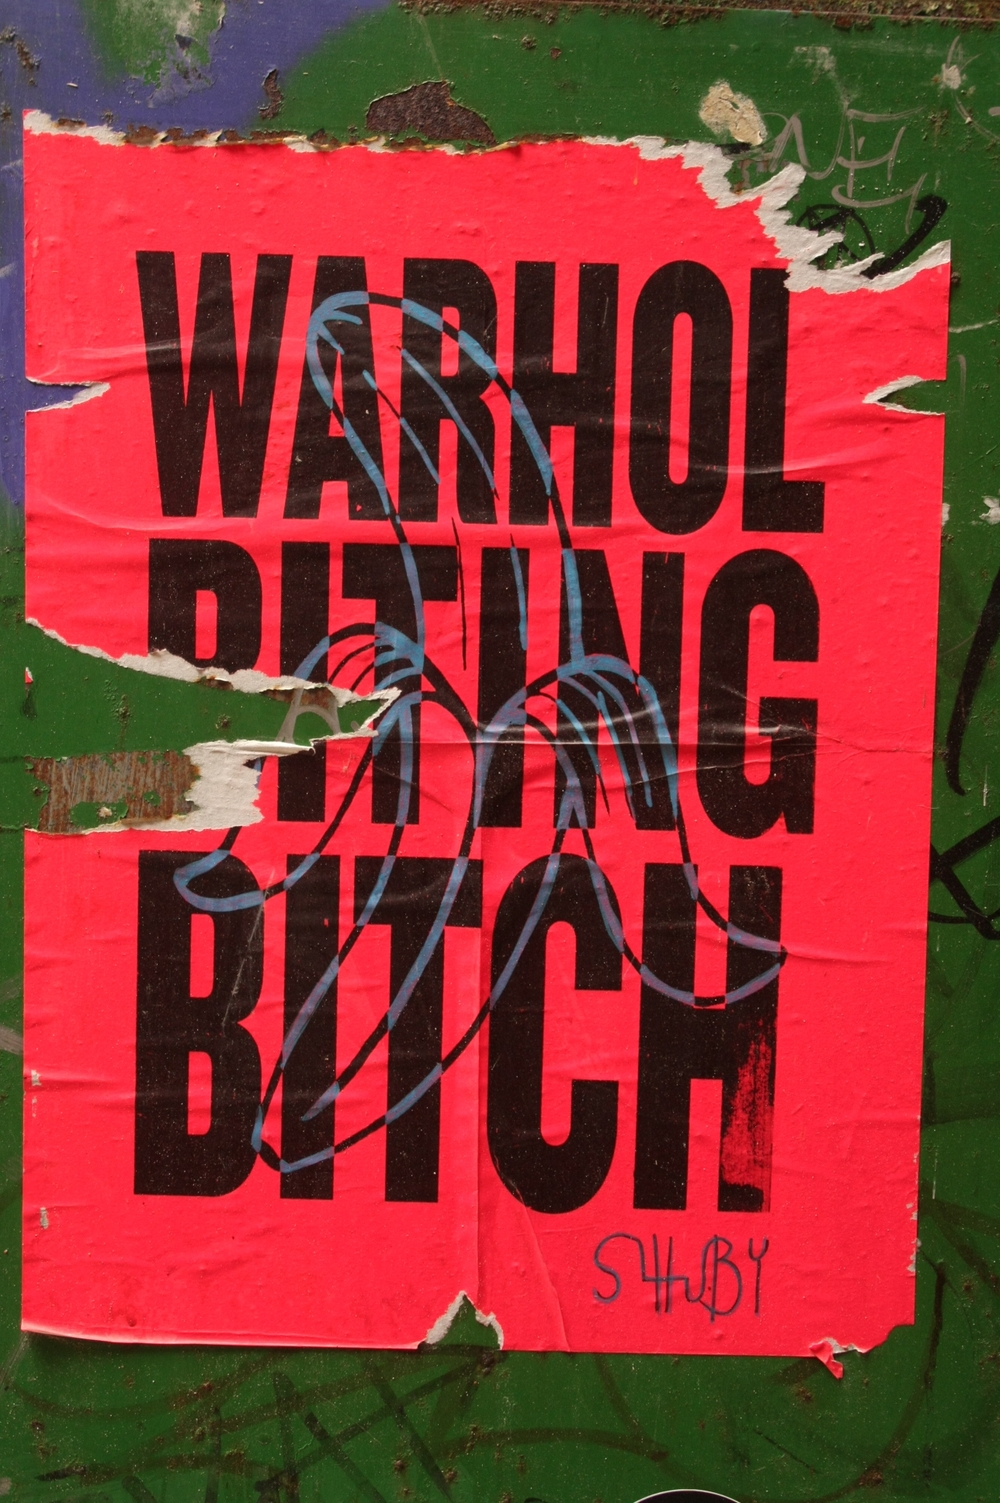 Warhol Bitch